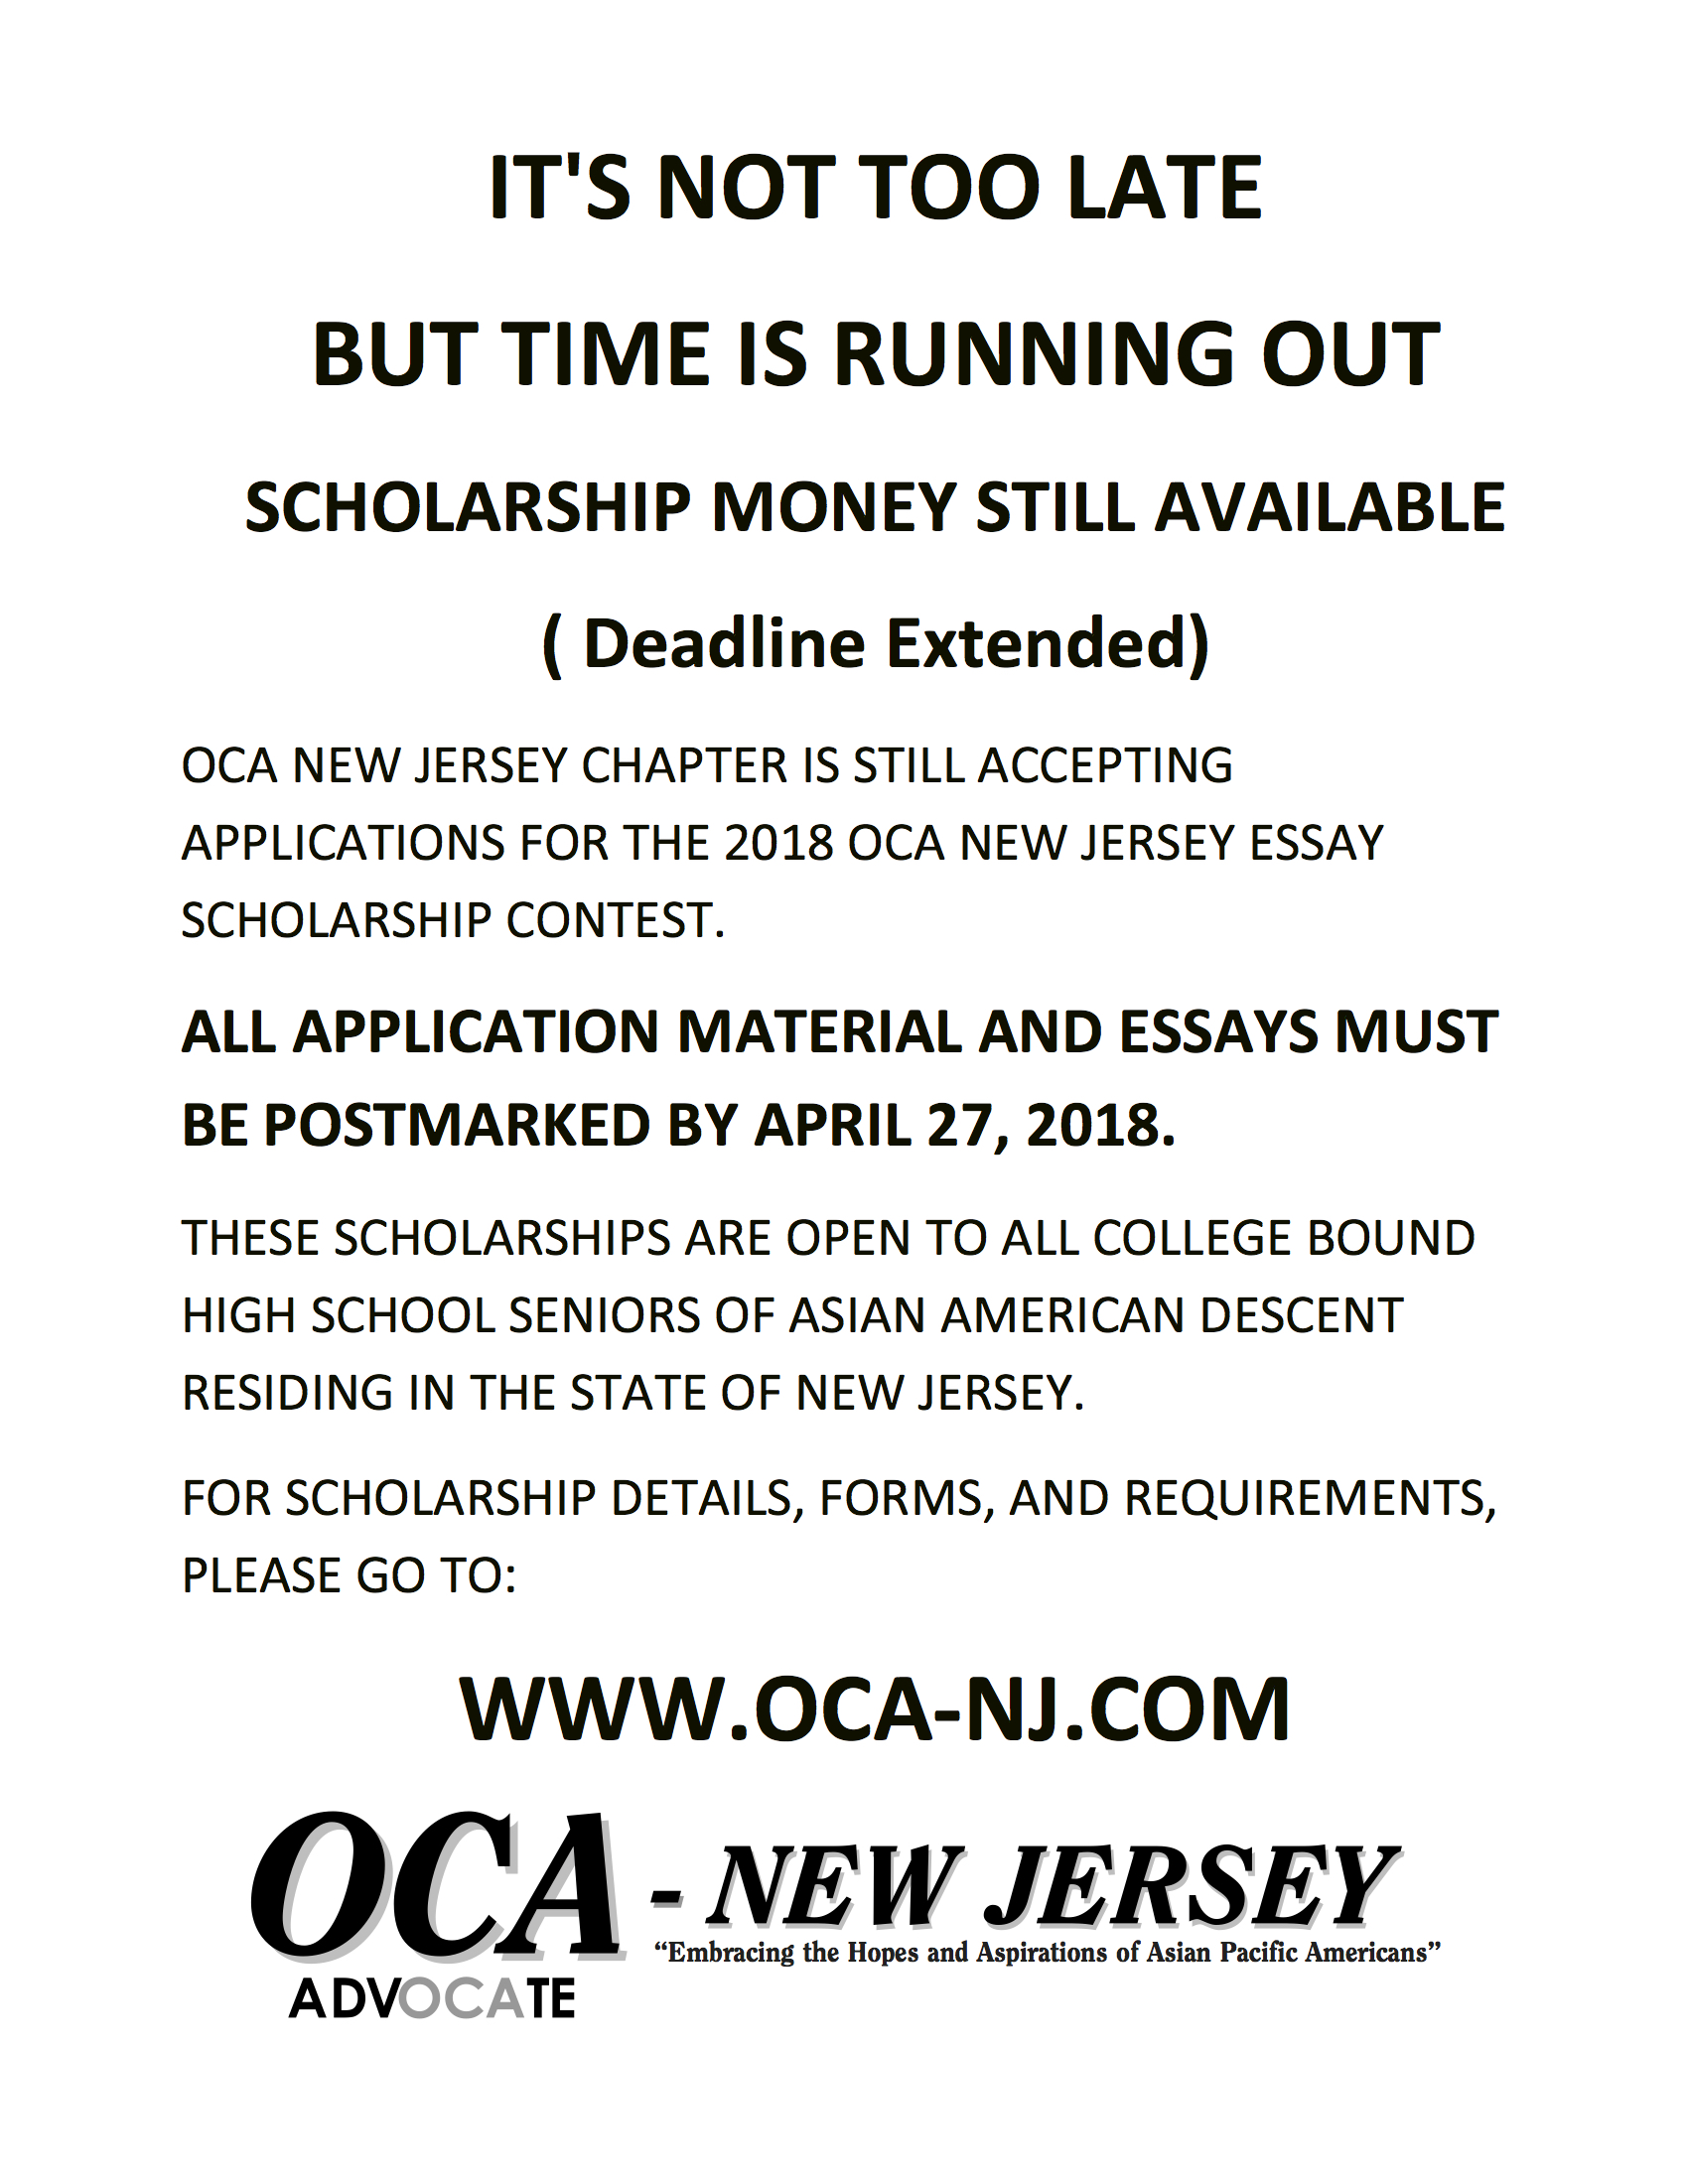 014 Essay Example Scholarships Entended Deadline Oca Nj Shocking For High School Students 2018 2019 Full